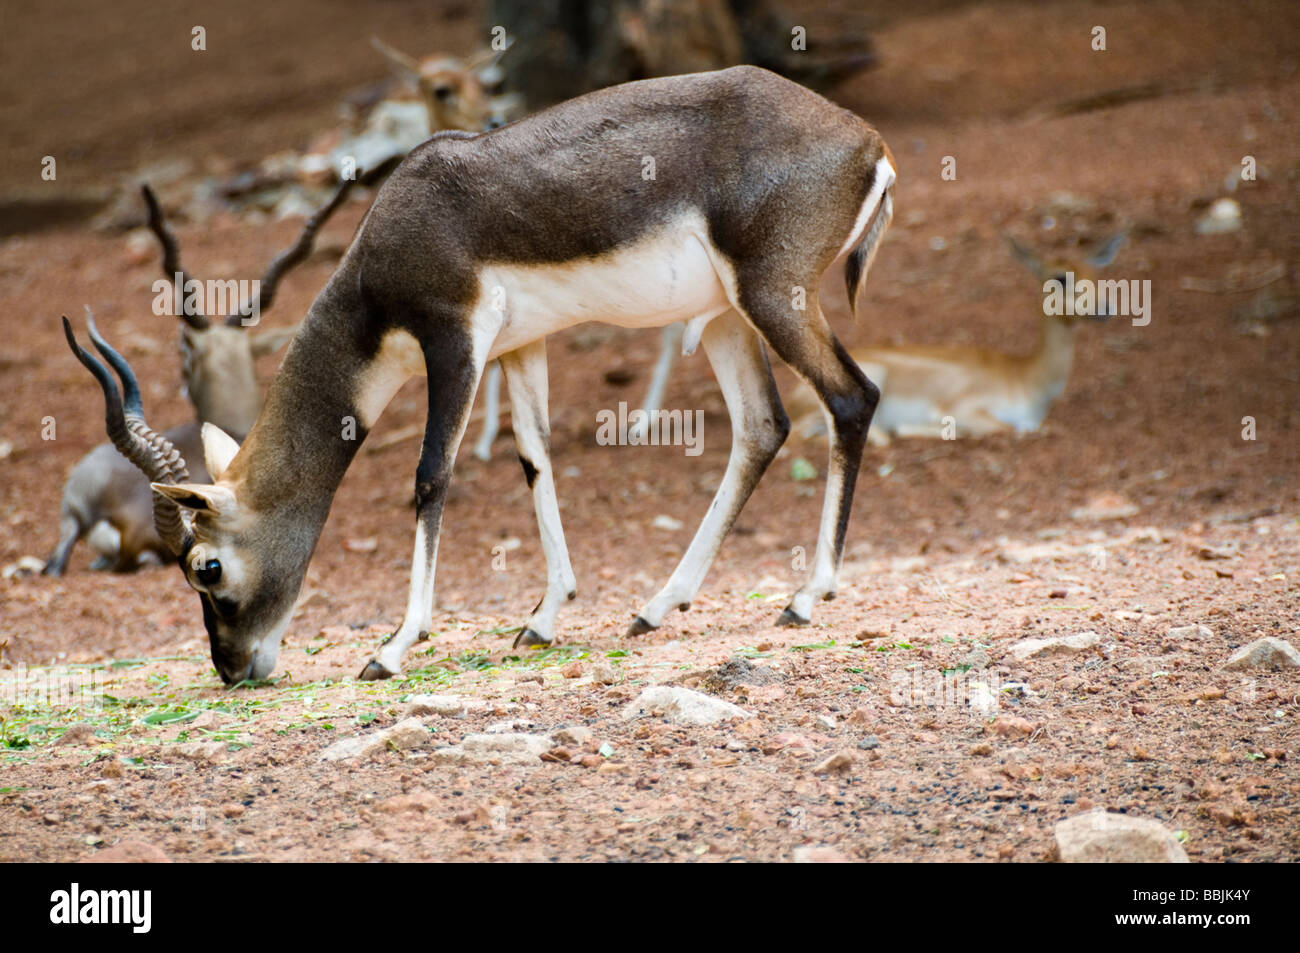 A Male Black Buck, Antelope cervicapra in sanctuary, Gujrat, India. - Stock Image